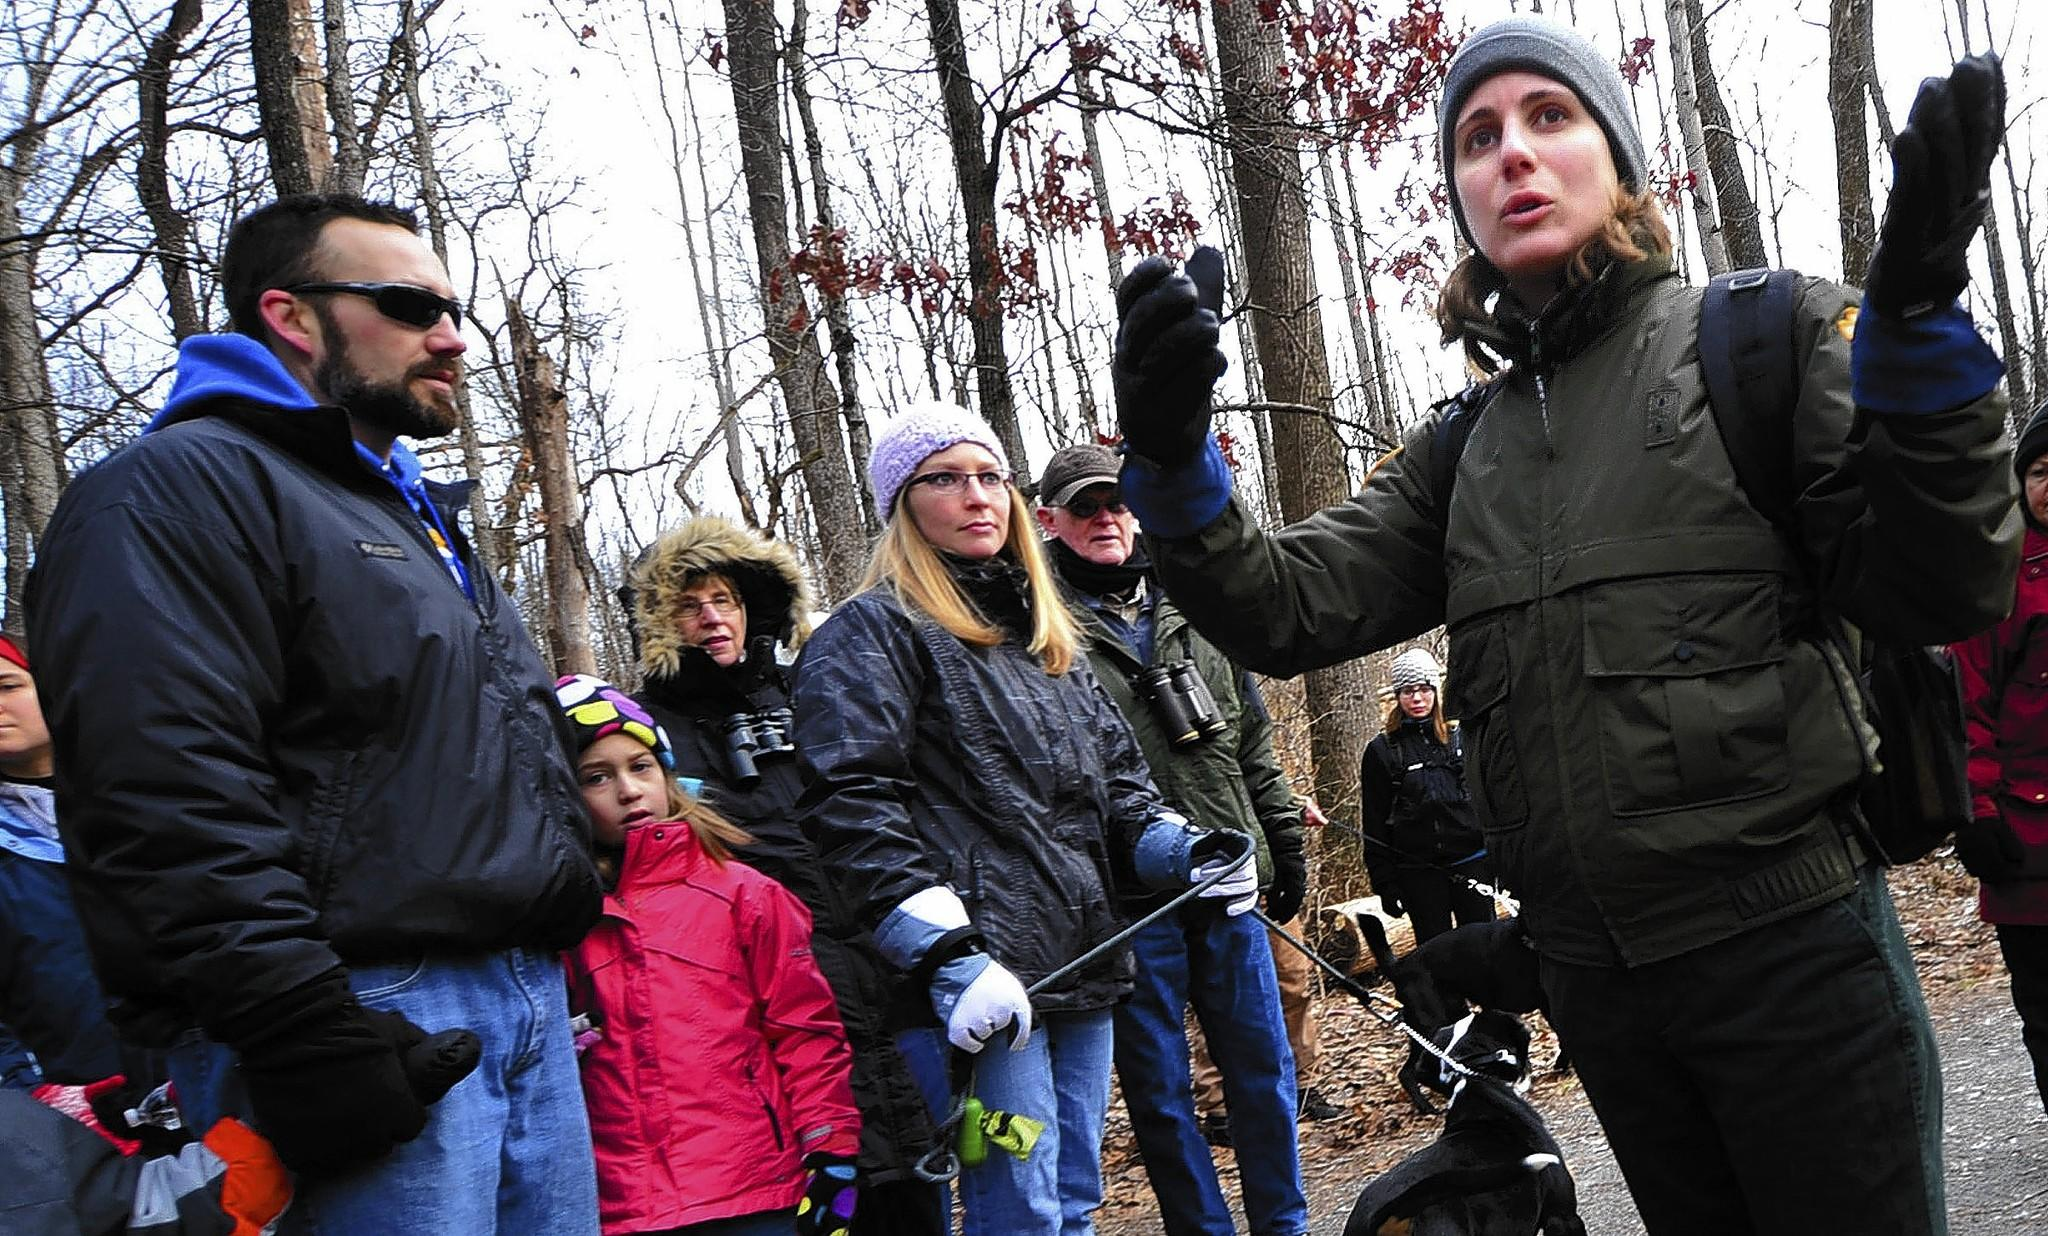 Jacobsburg Environmental Education Center educator Lauren Forster leads visitors on a 2.5 mile interpretive hike at the state park. Hikers learned about the old growth forest of Henry's Woods and the fields of the Homestead Trail.